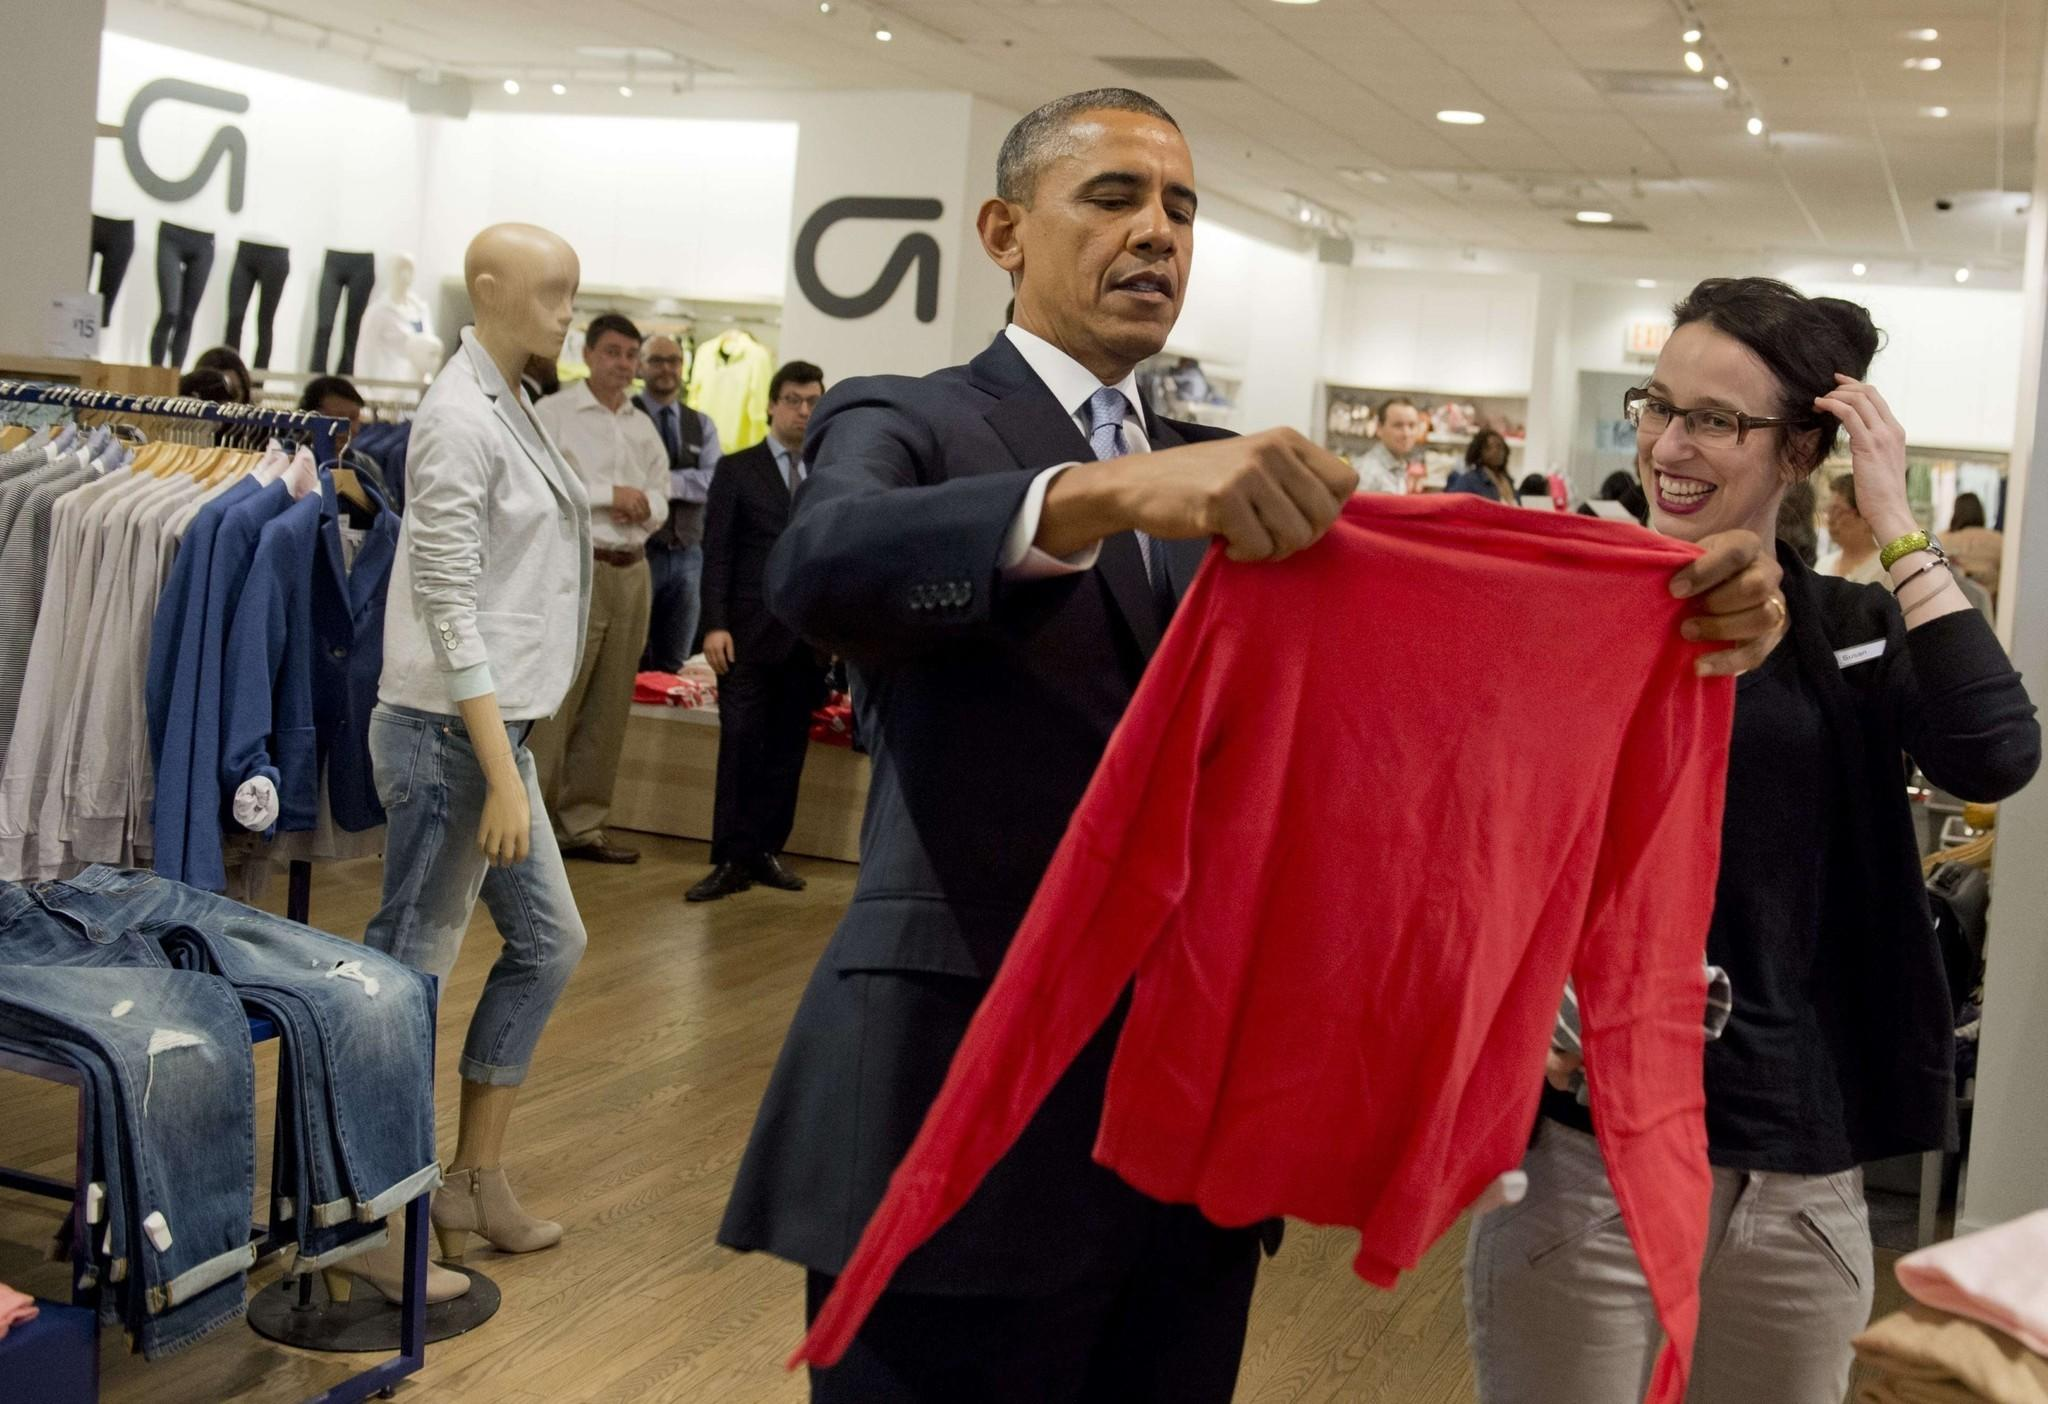 President Obama shops for clothing for his family alongside store employee Susan Panariello during a visit to a Gap clothing store in New York City to highlight his proposal to raise the federal minimum wage.